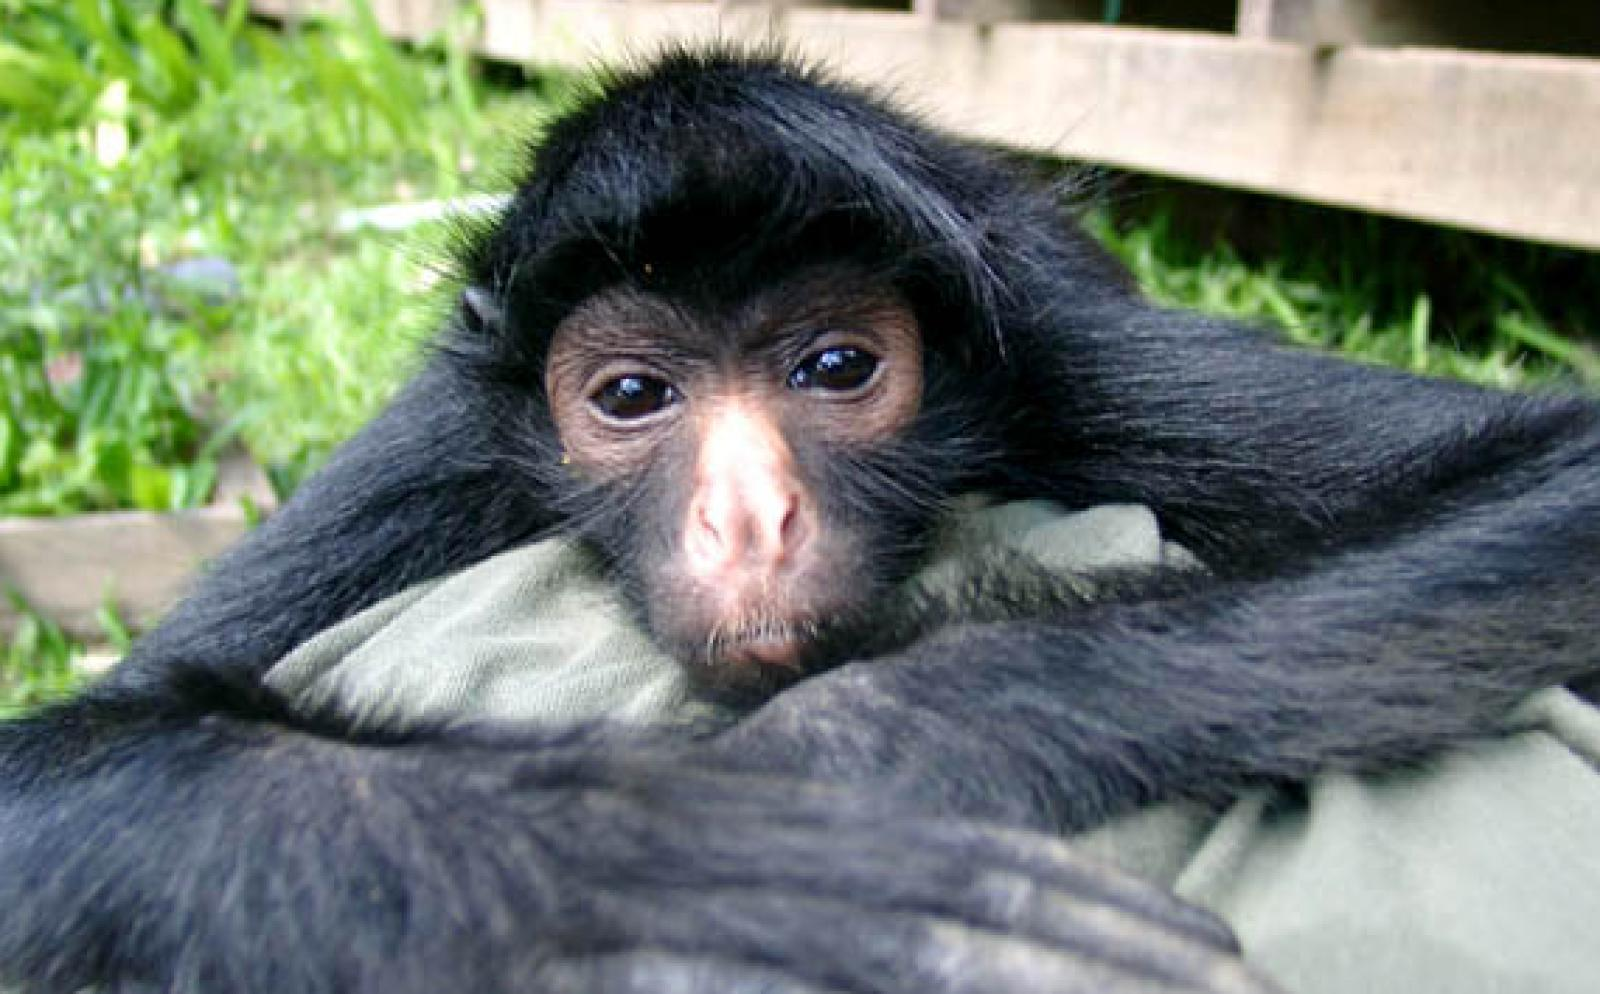 A spider monkey relaxing at the animal rehabilitation center in Peru